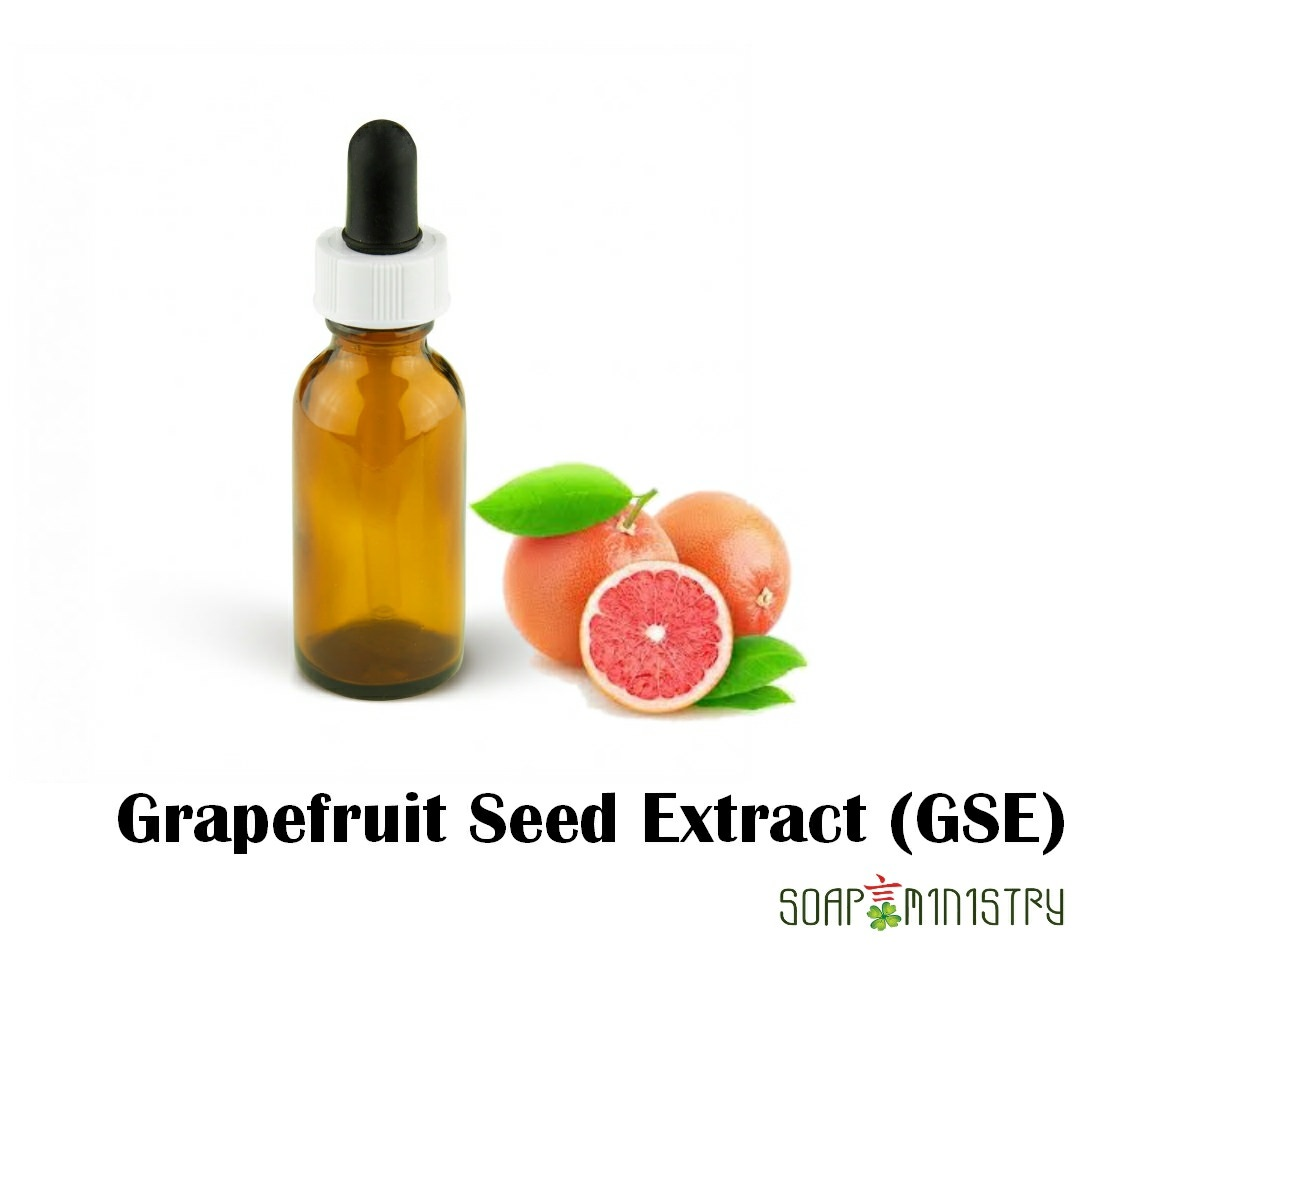 Grapefruit Seed Extract (GSE) 100g